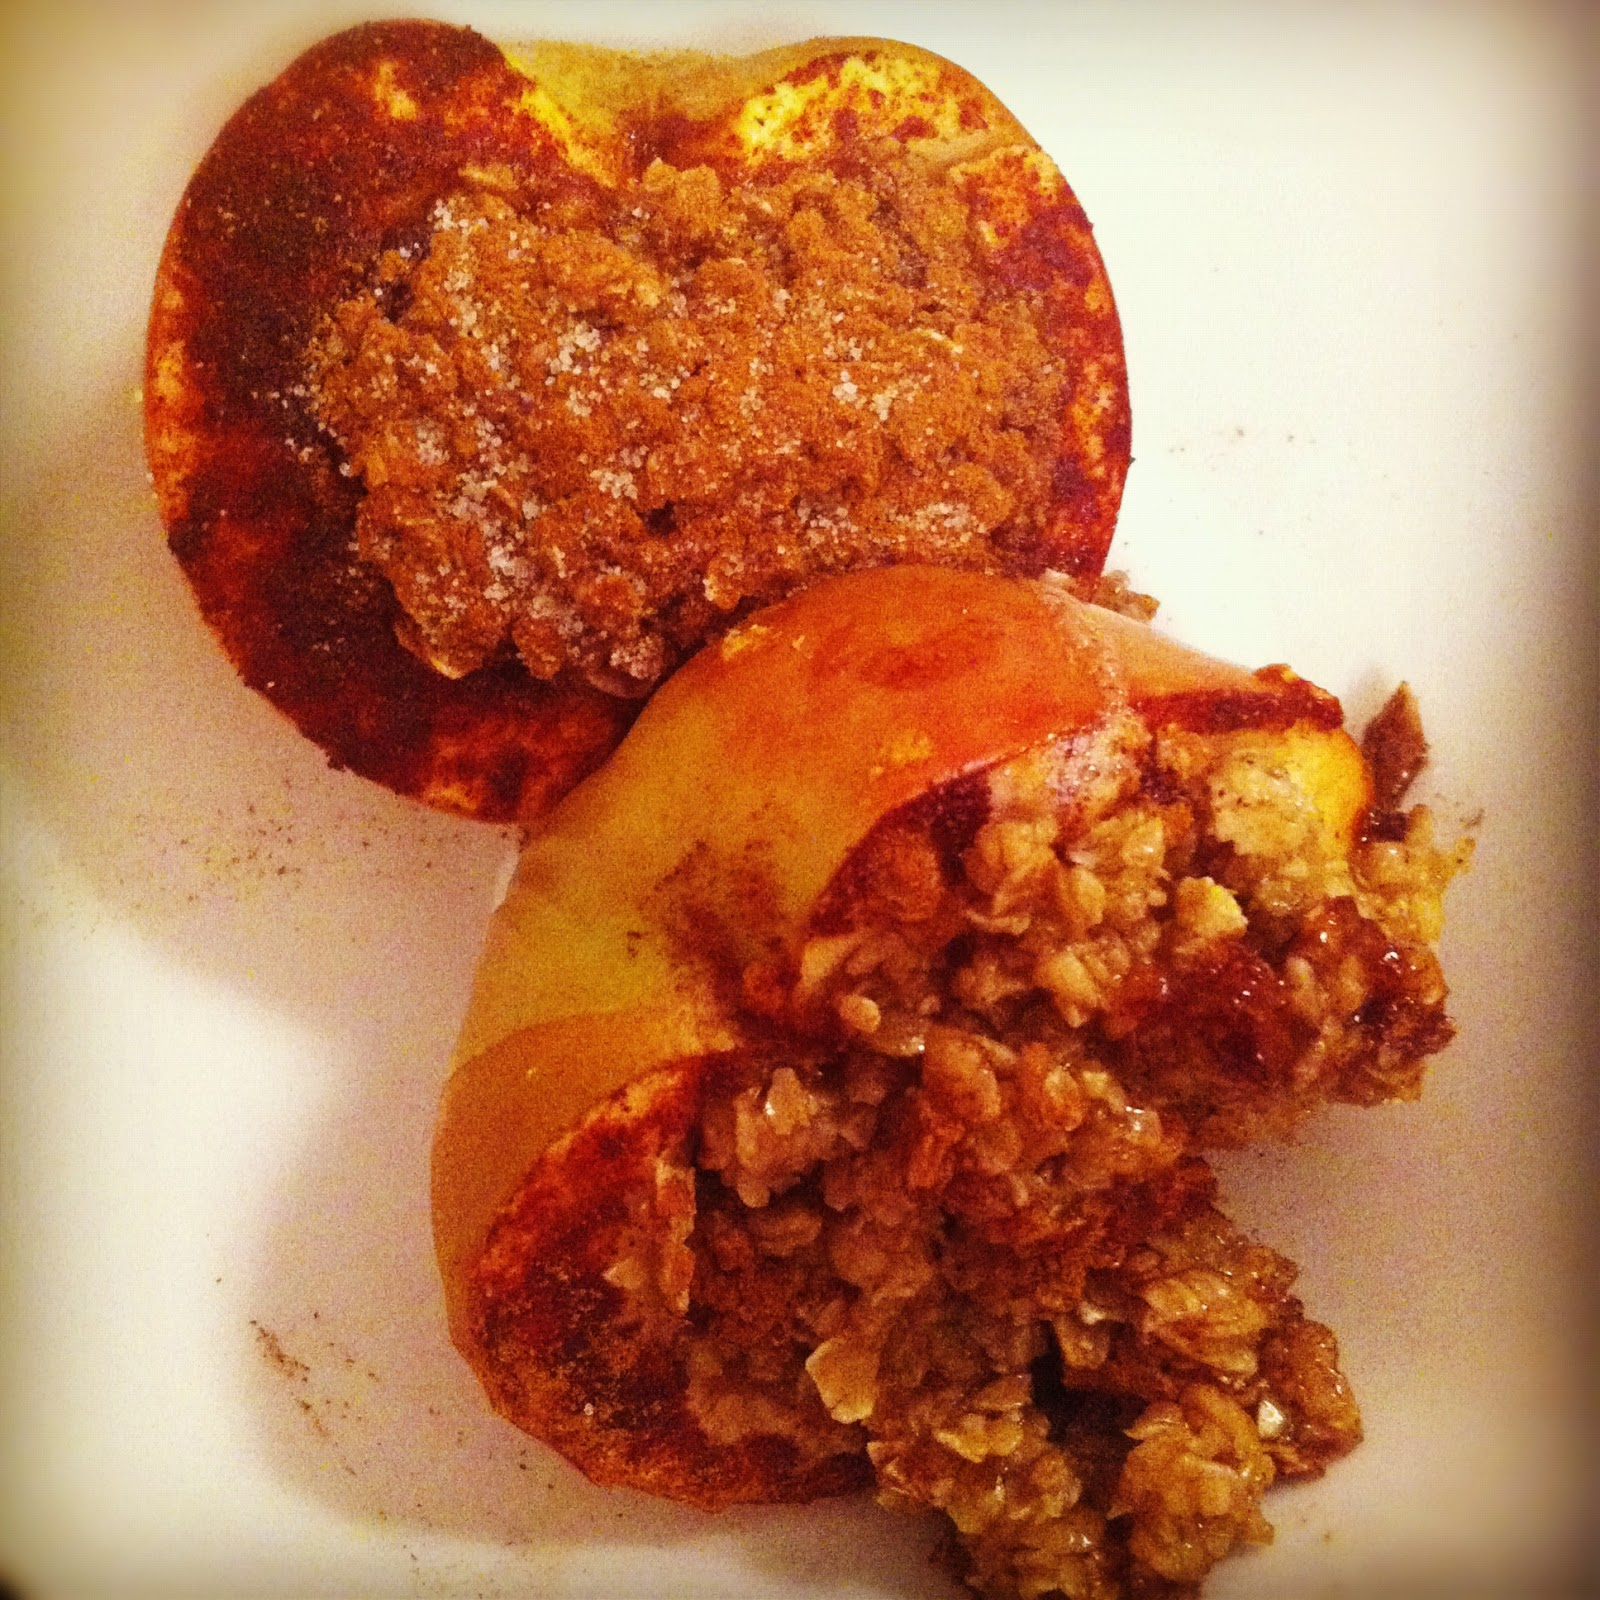 Chelsea's Choice: Healthy Baked Stuffed Apples